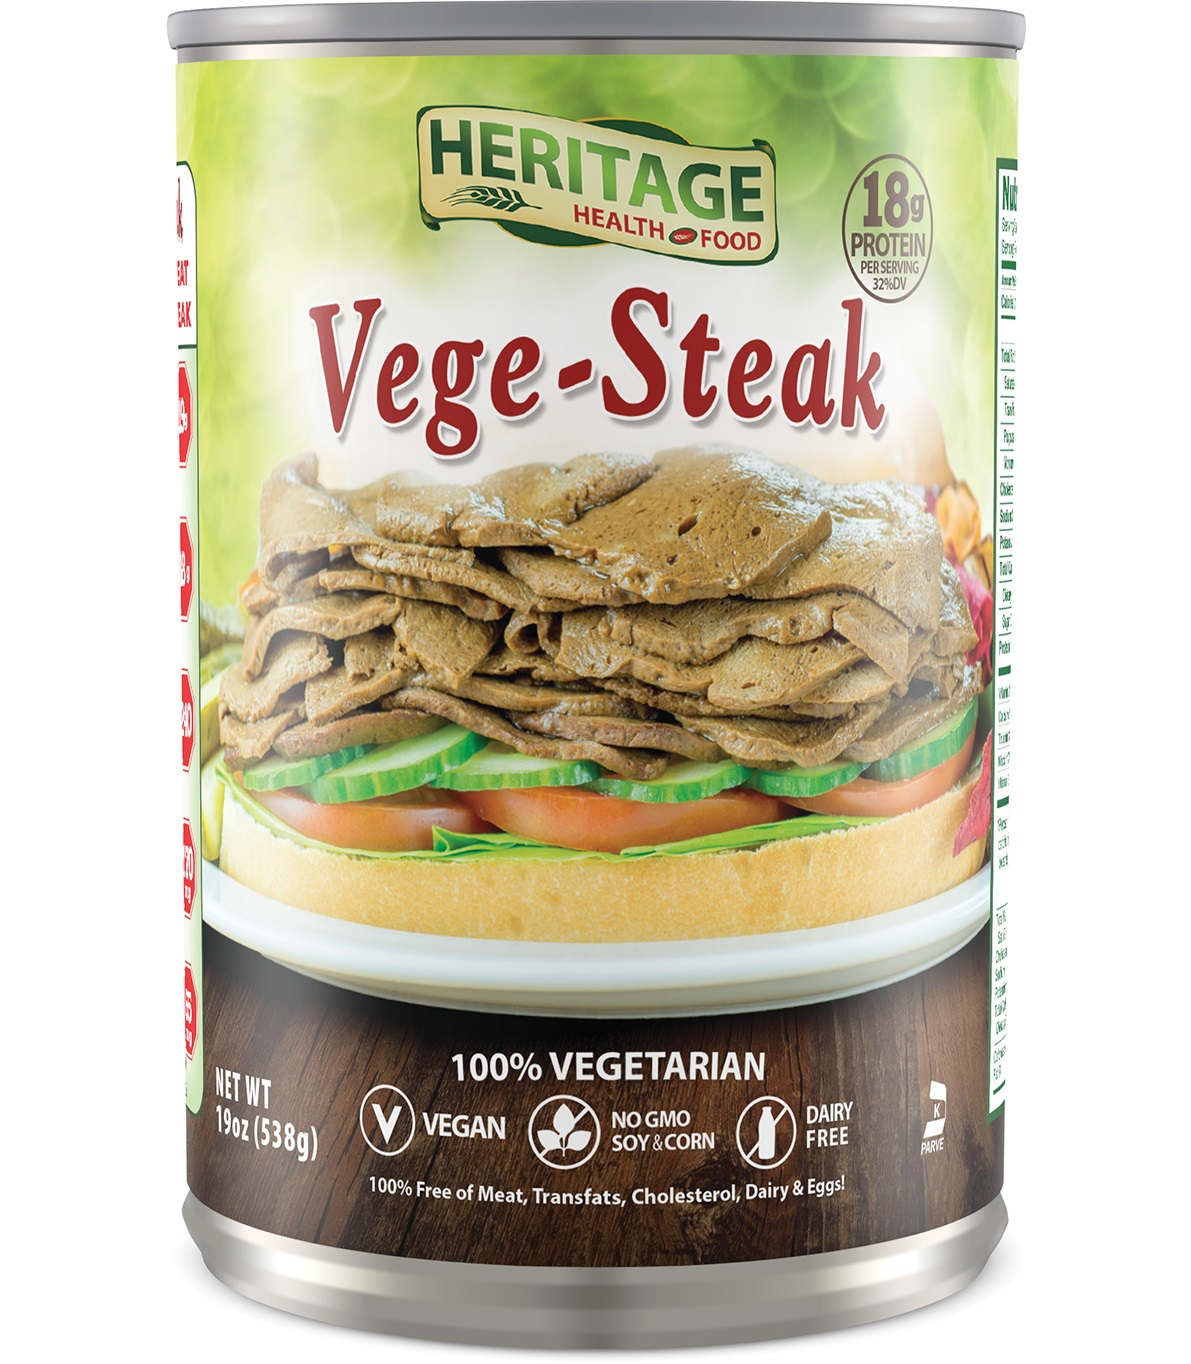 VEGE STEAKS-HERITAGE,HERITAGE HEALTH FOOD,853205002184